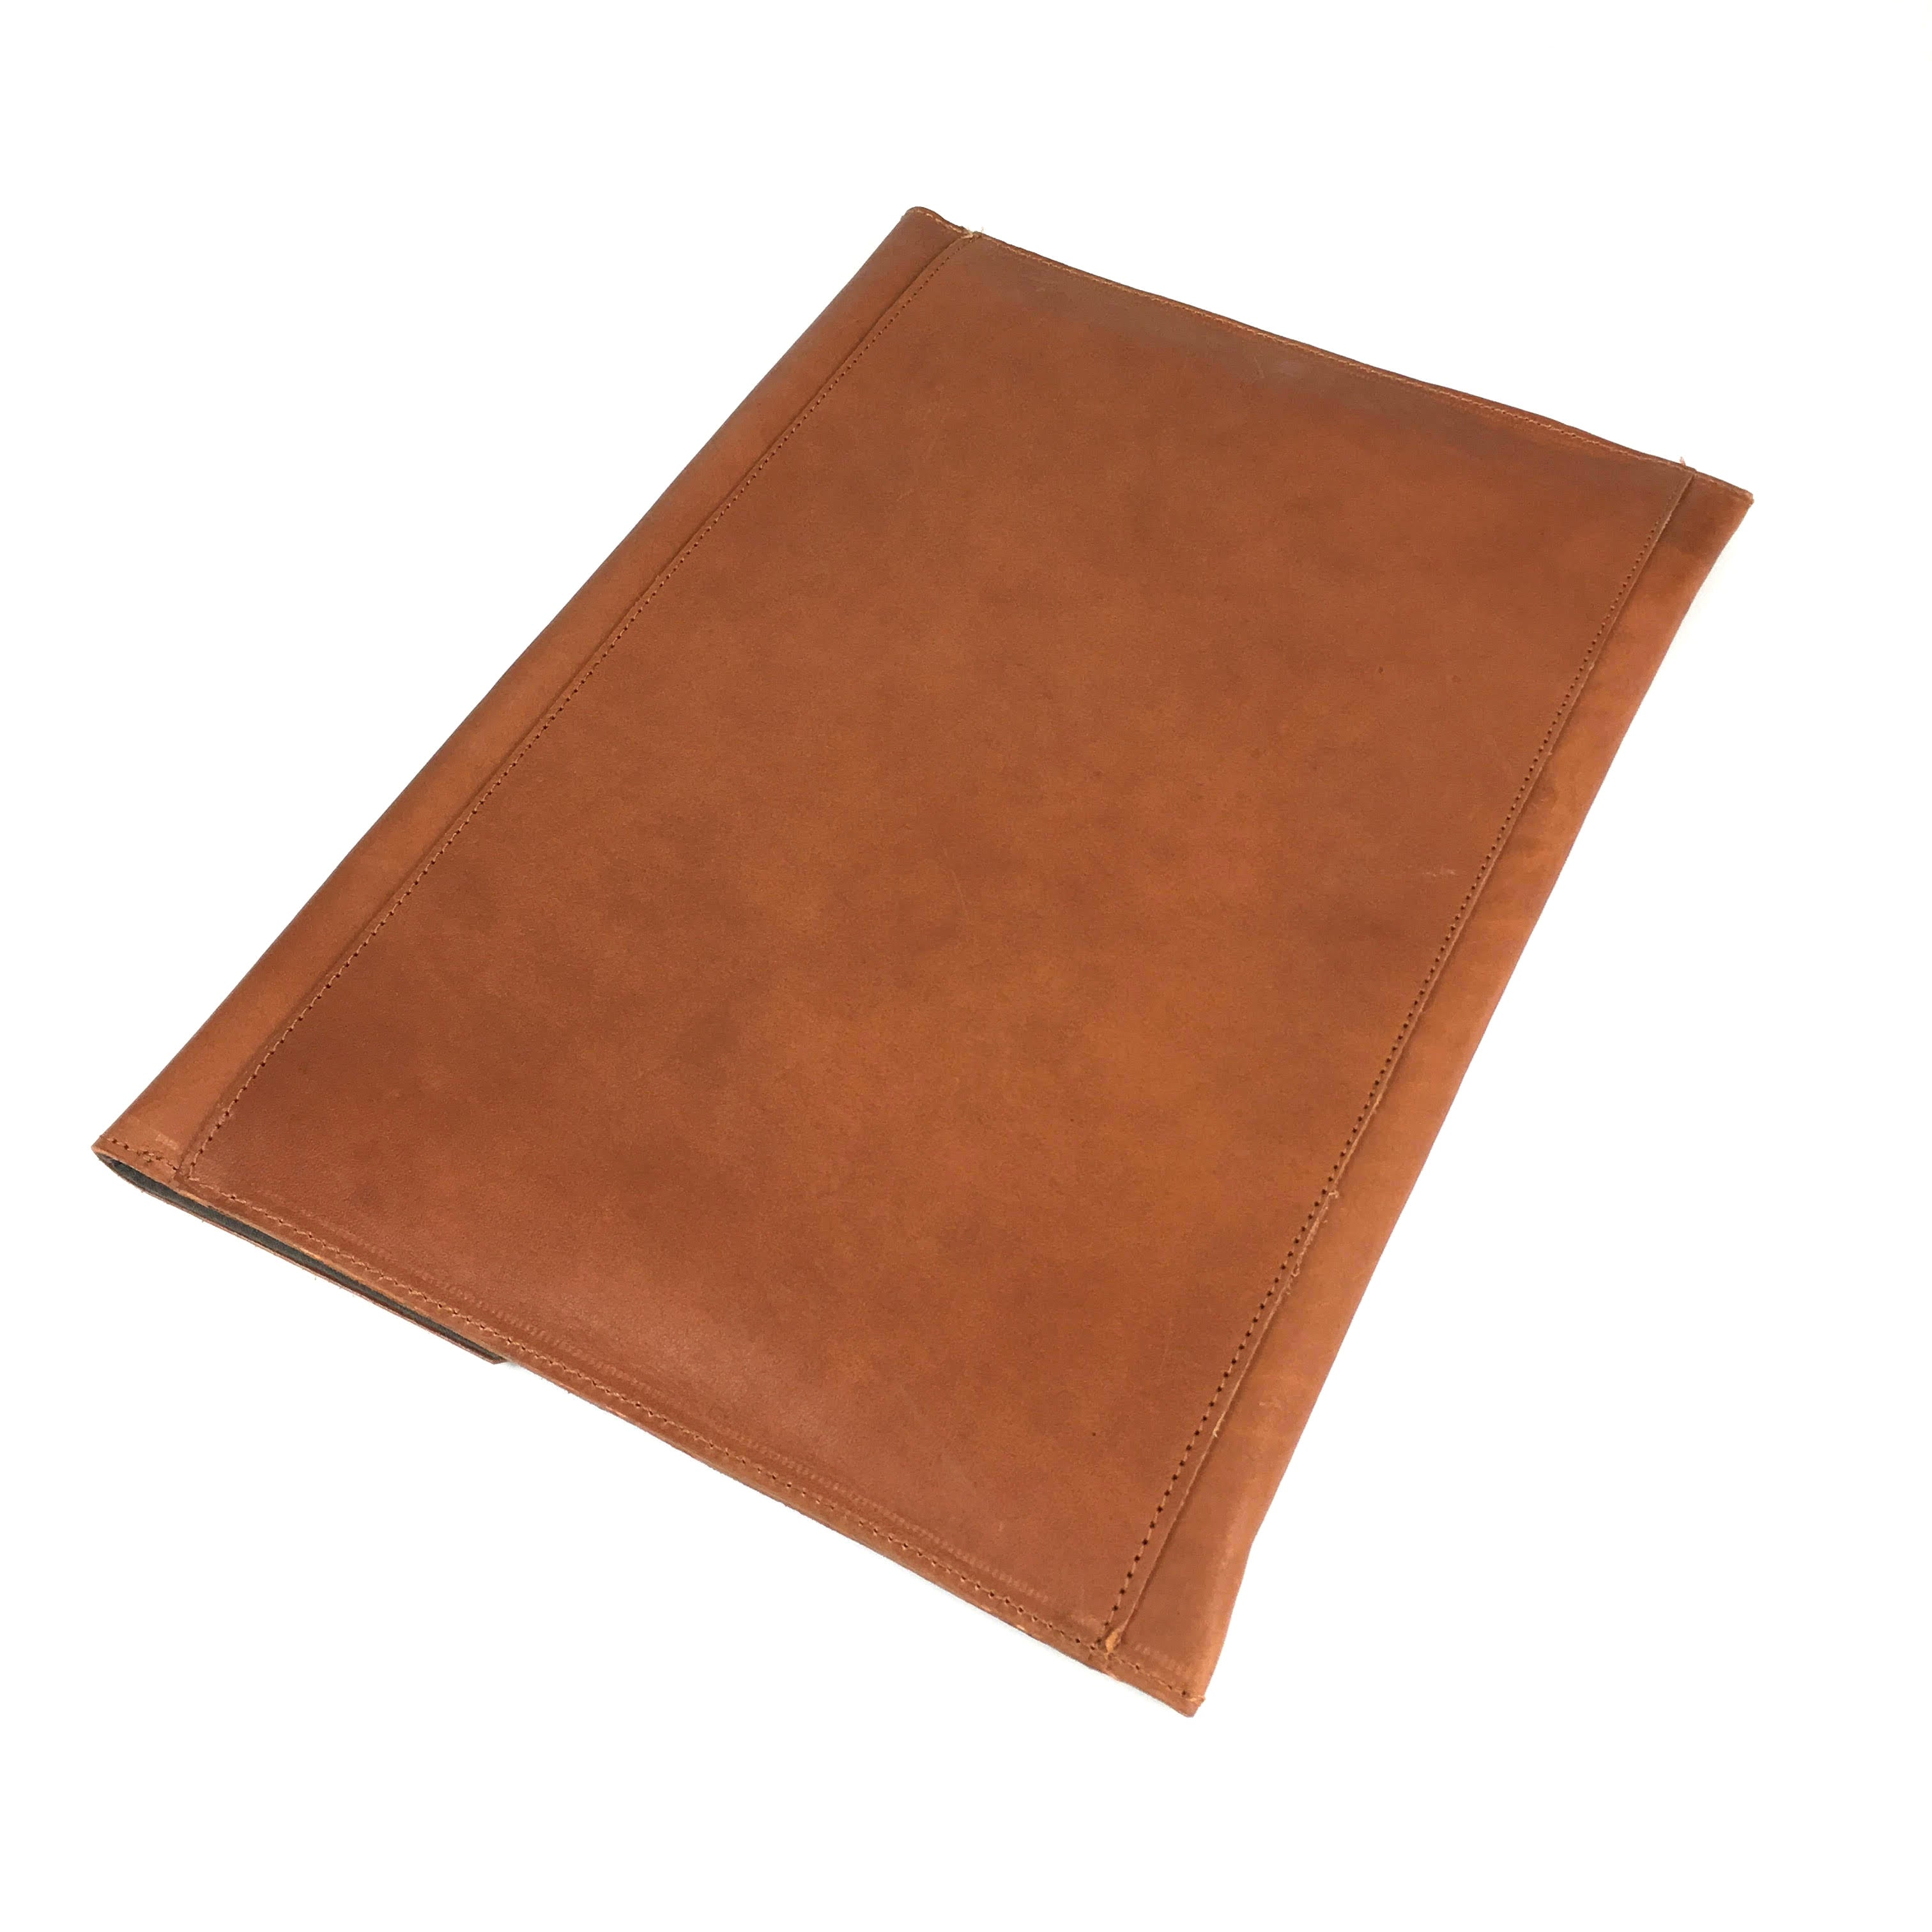 leather laptop case 13 inch. leather laptop cover. leather laptop sleeve. camel